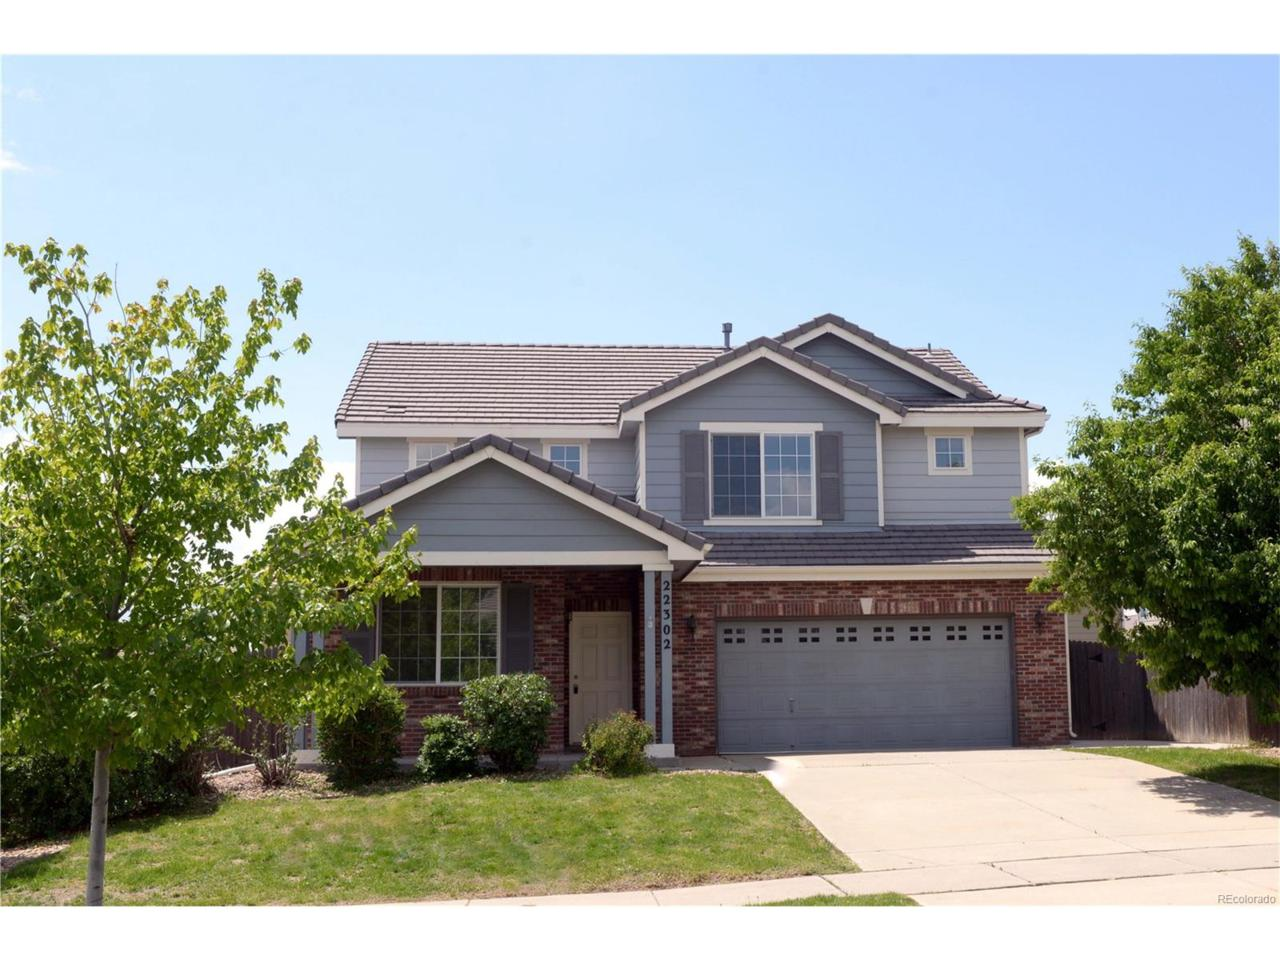 22302 E Jarvis Place, Aurora, CO 80018 (MLS #8747329) :: 8z Real Estate